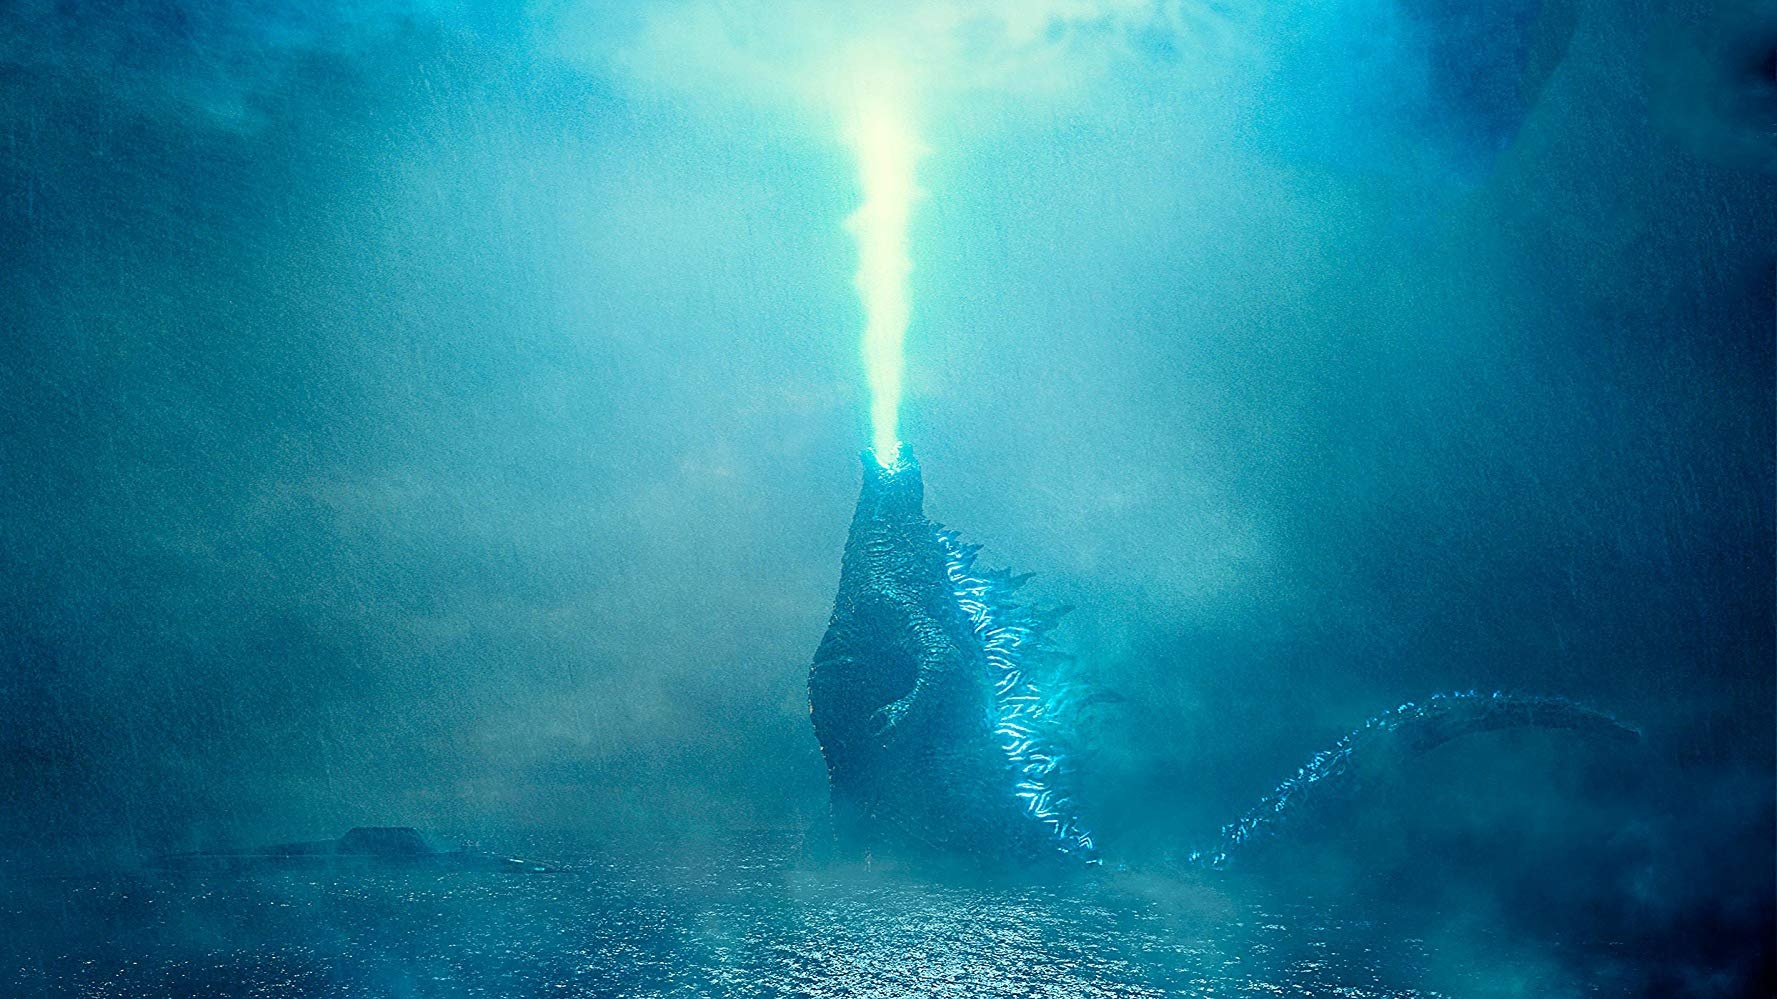 Godzilla: King of Monsters is due out May 31st